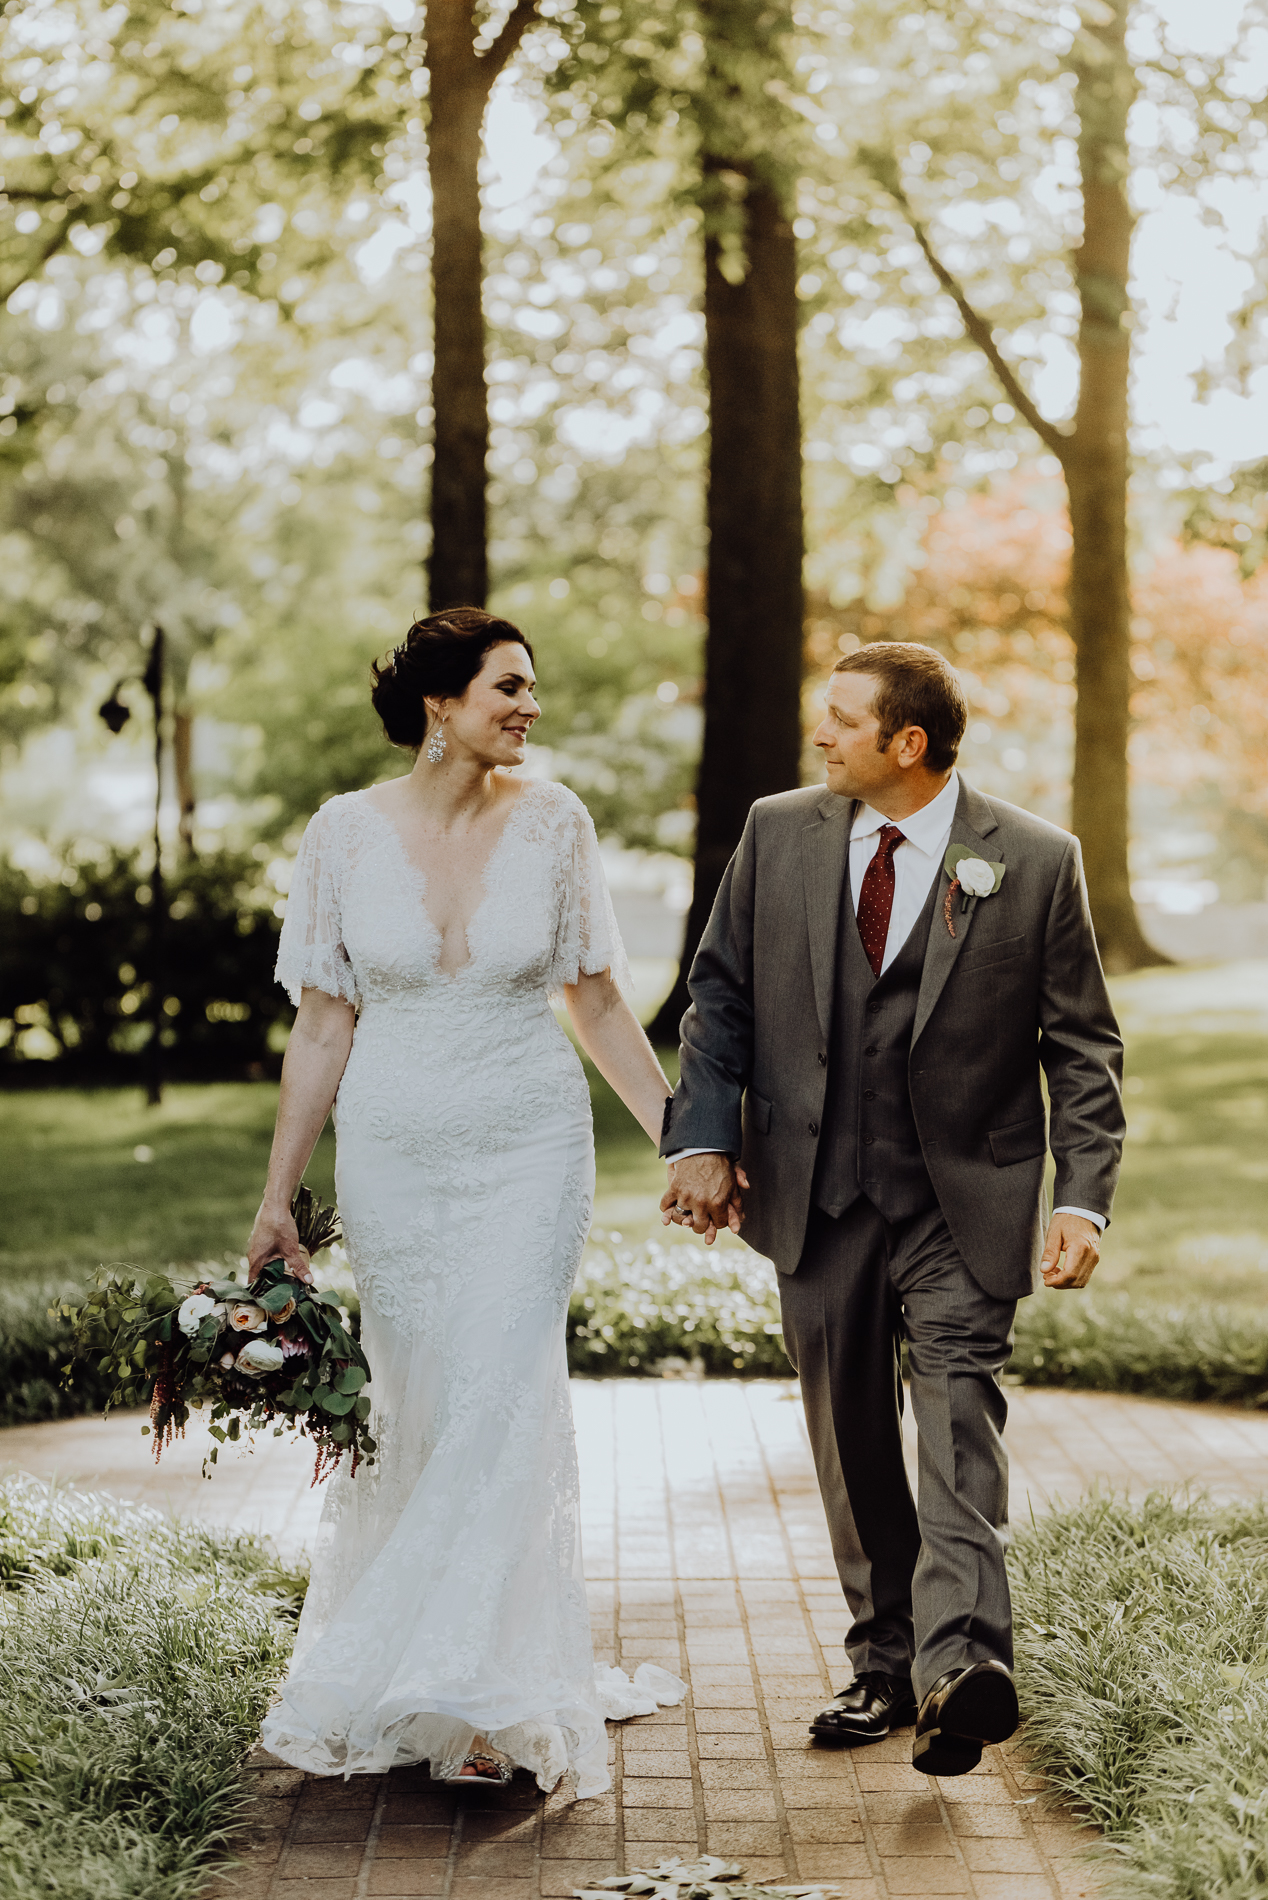 julia and dennis wedding at graceland by wilde company-122.jpg